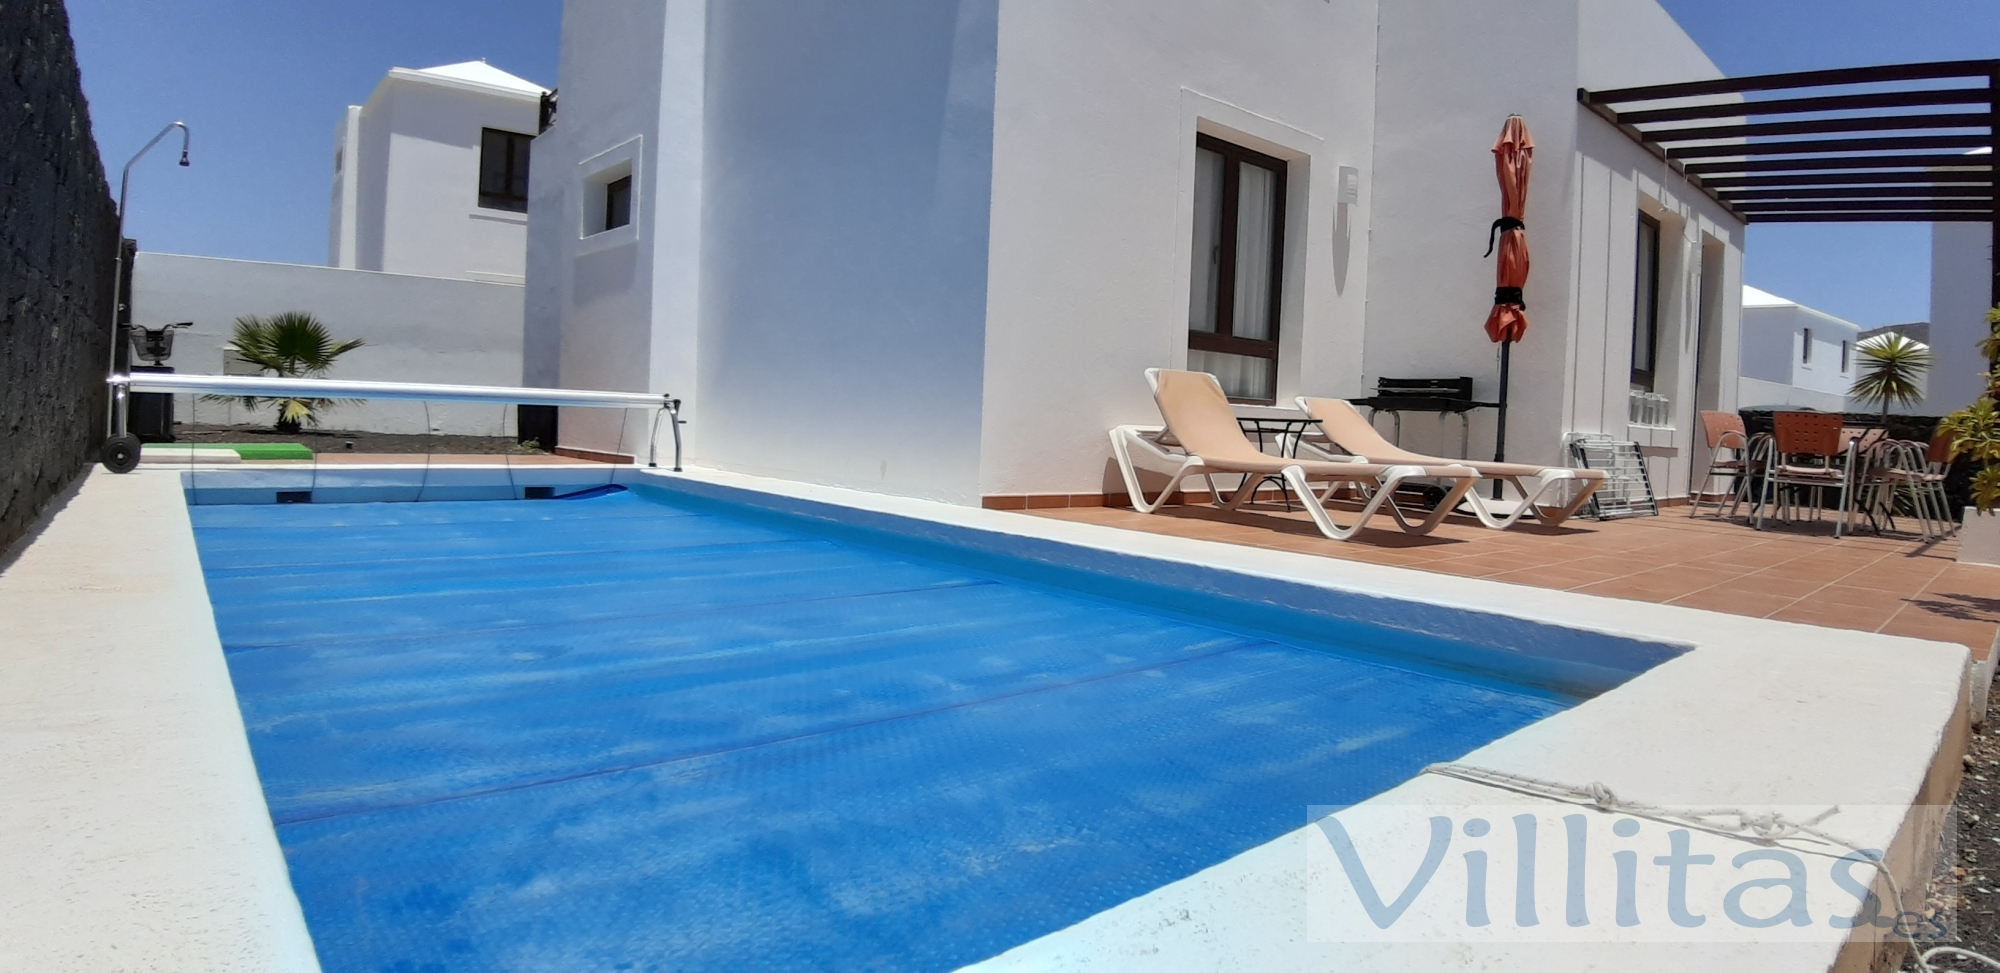 Duplex Independiente 3 dorm. y piscina Playa Blanca